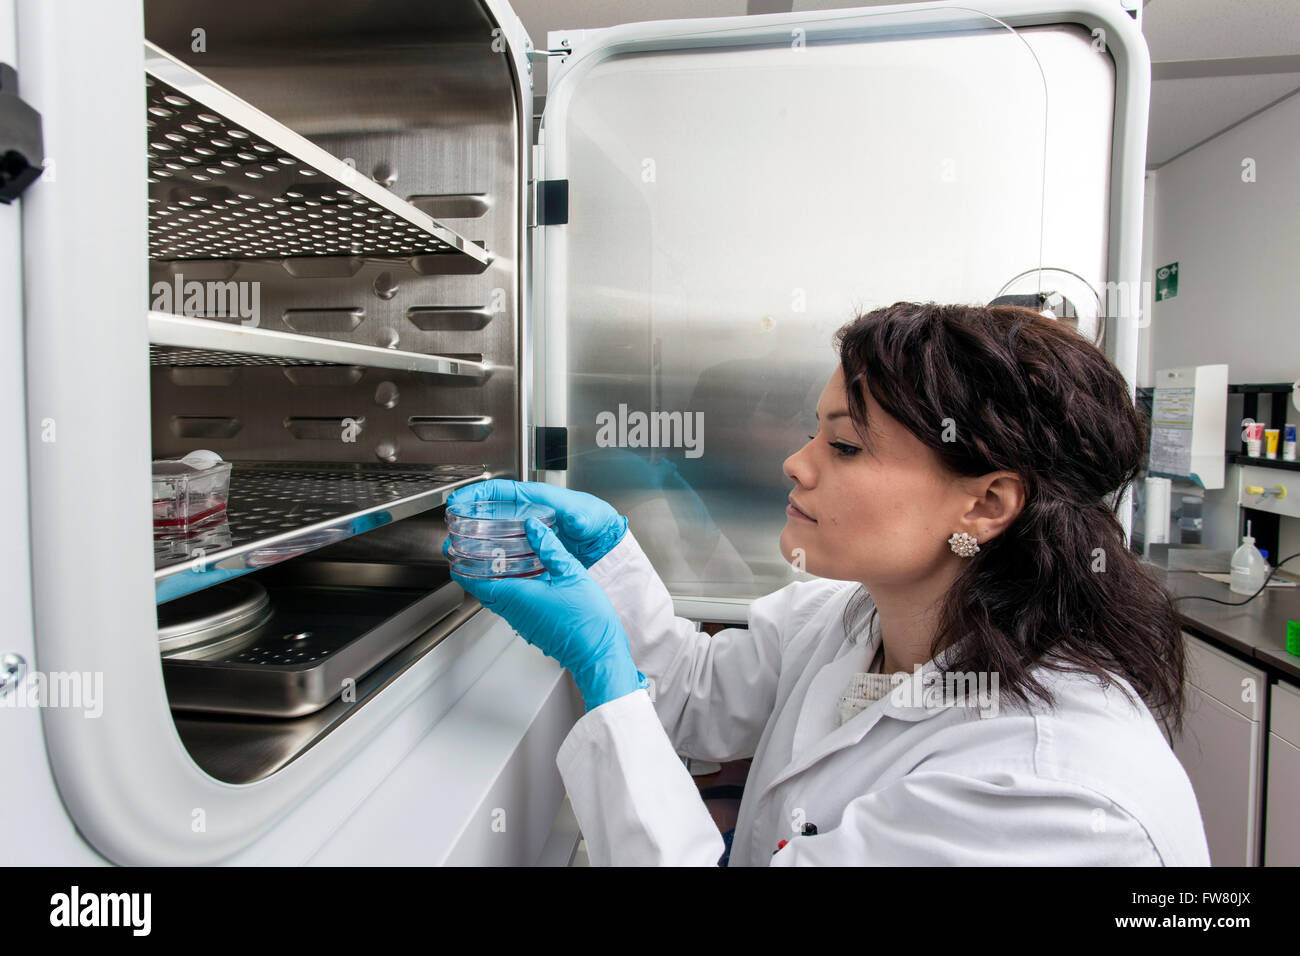 Scientist at a incubator. - Stock Image